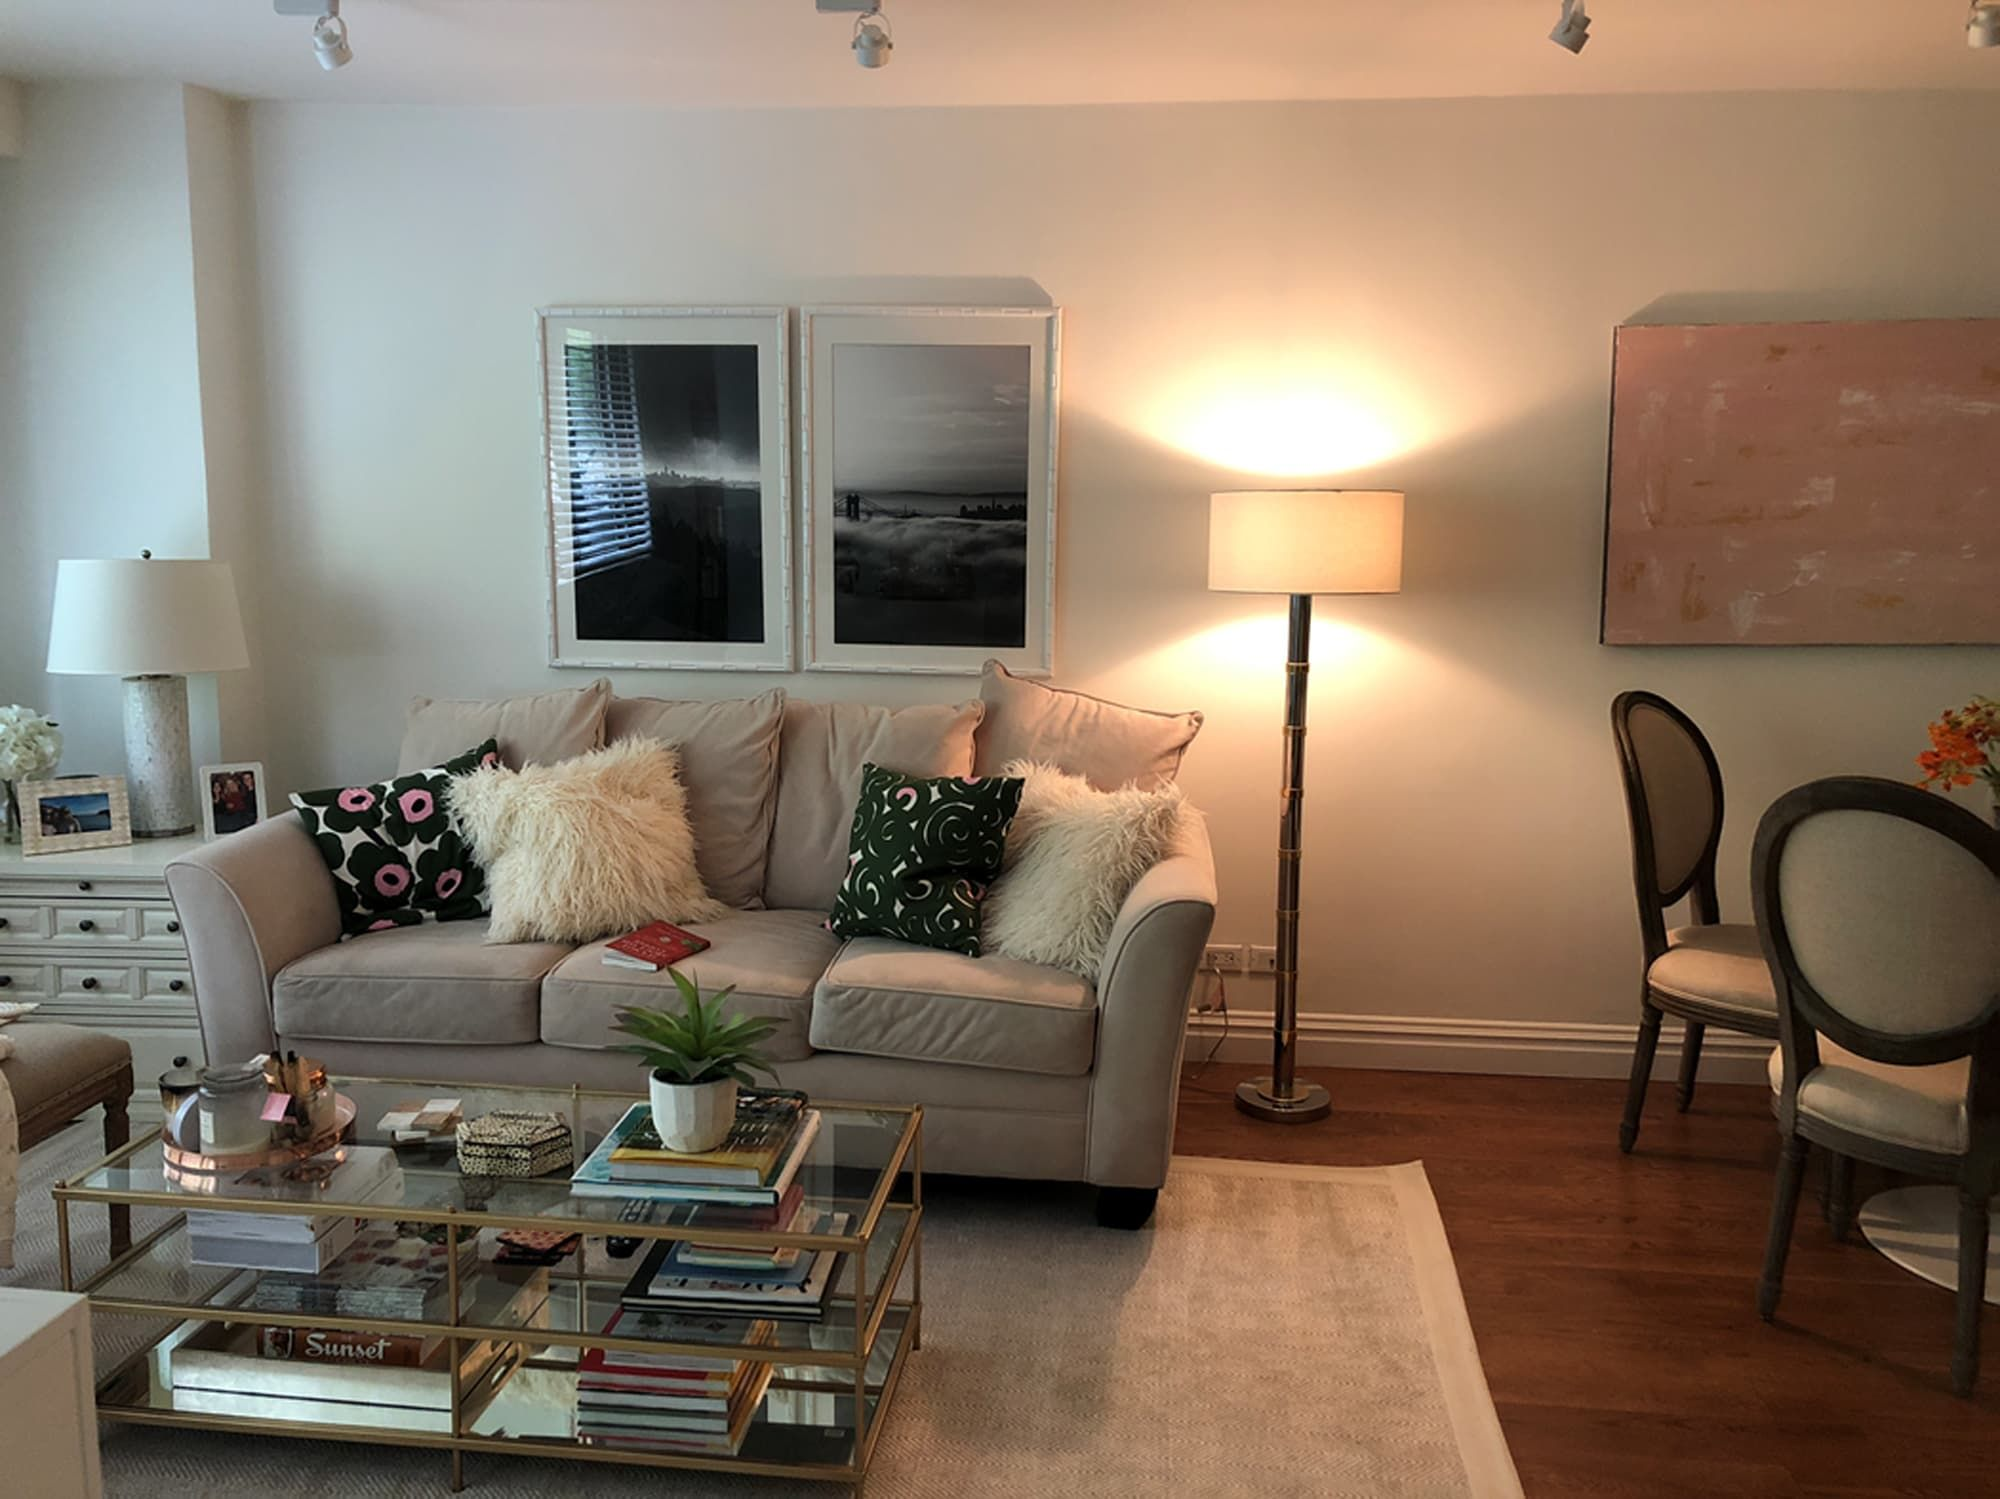 Before and after after a minimalism inspired makeover a dark dated living room is light and bright apartment therapy